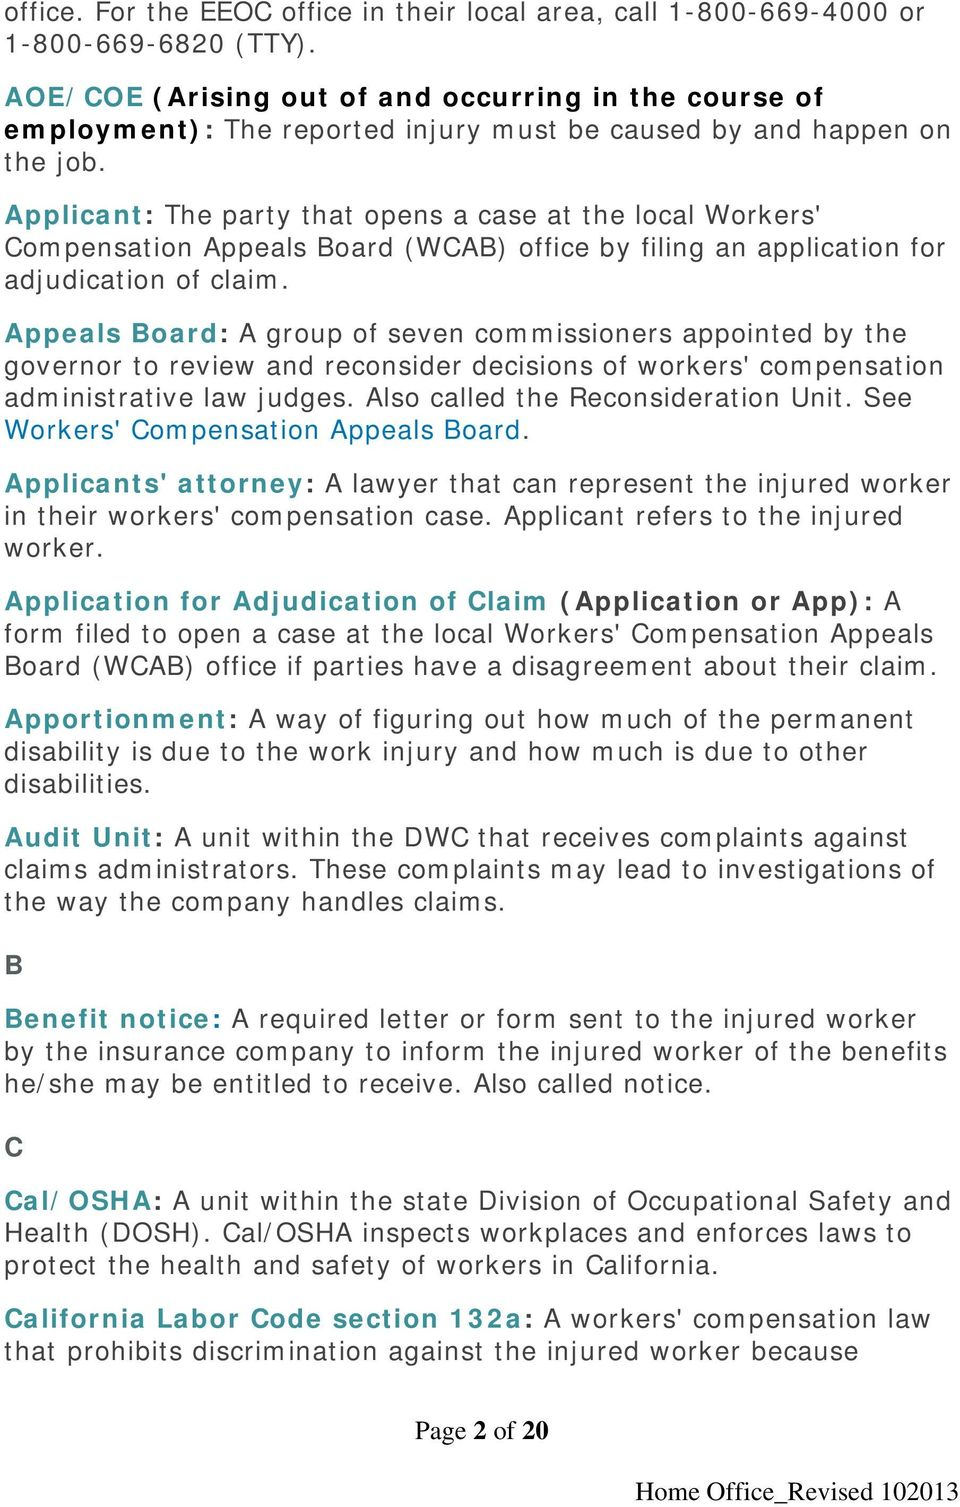 Applicant: The party that opens a case at the local Workers' Compensation Appeals Board (WCAB) office by filing an application for adjudication of claim.